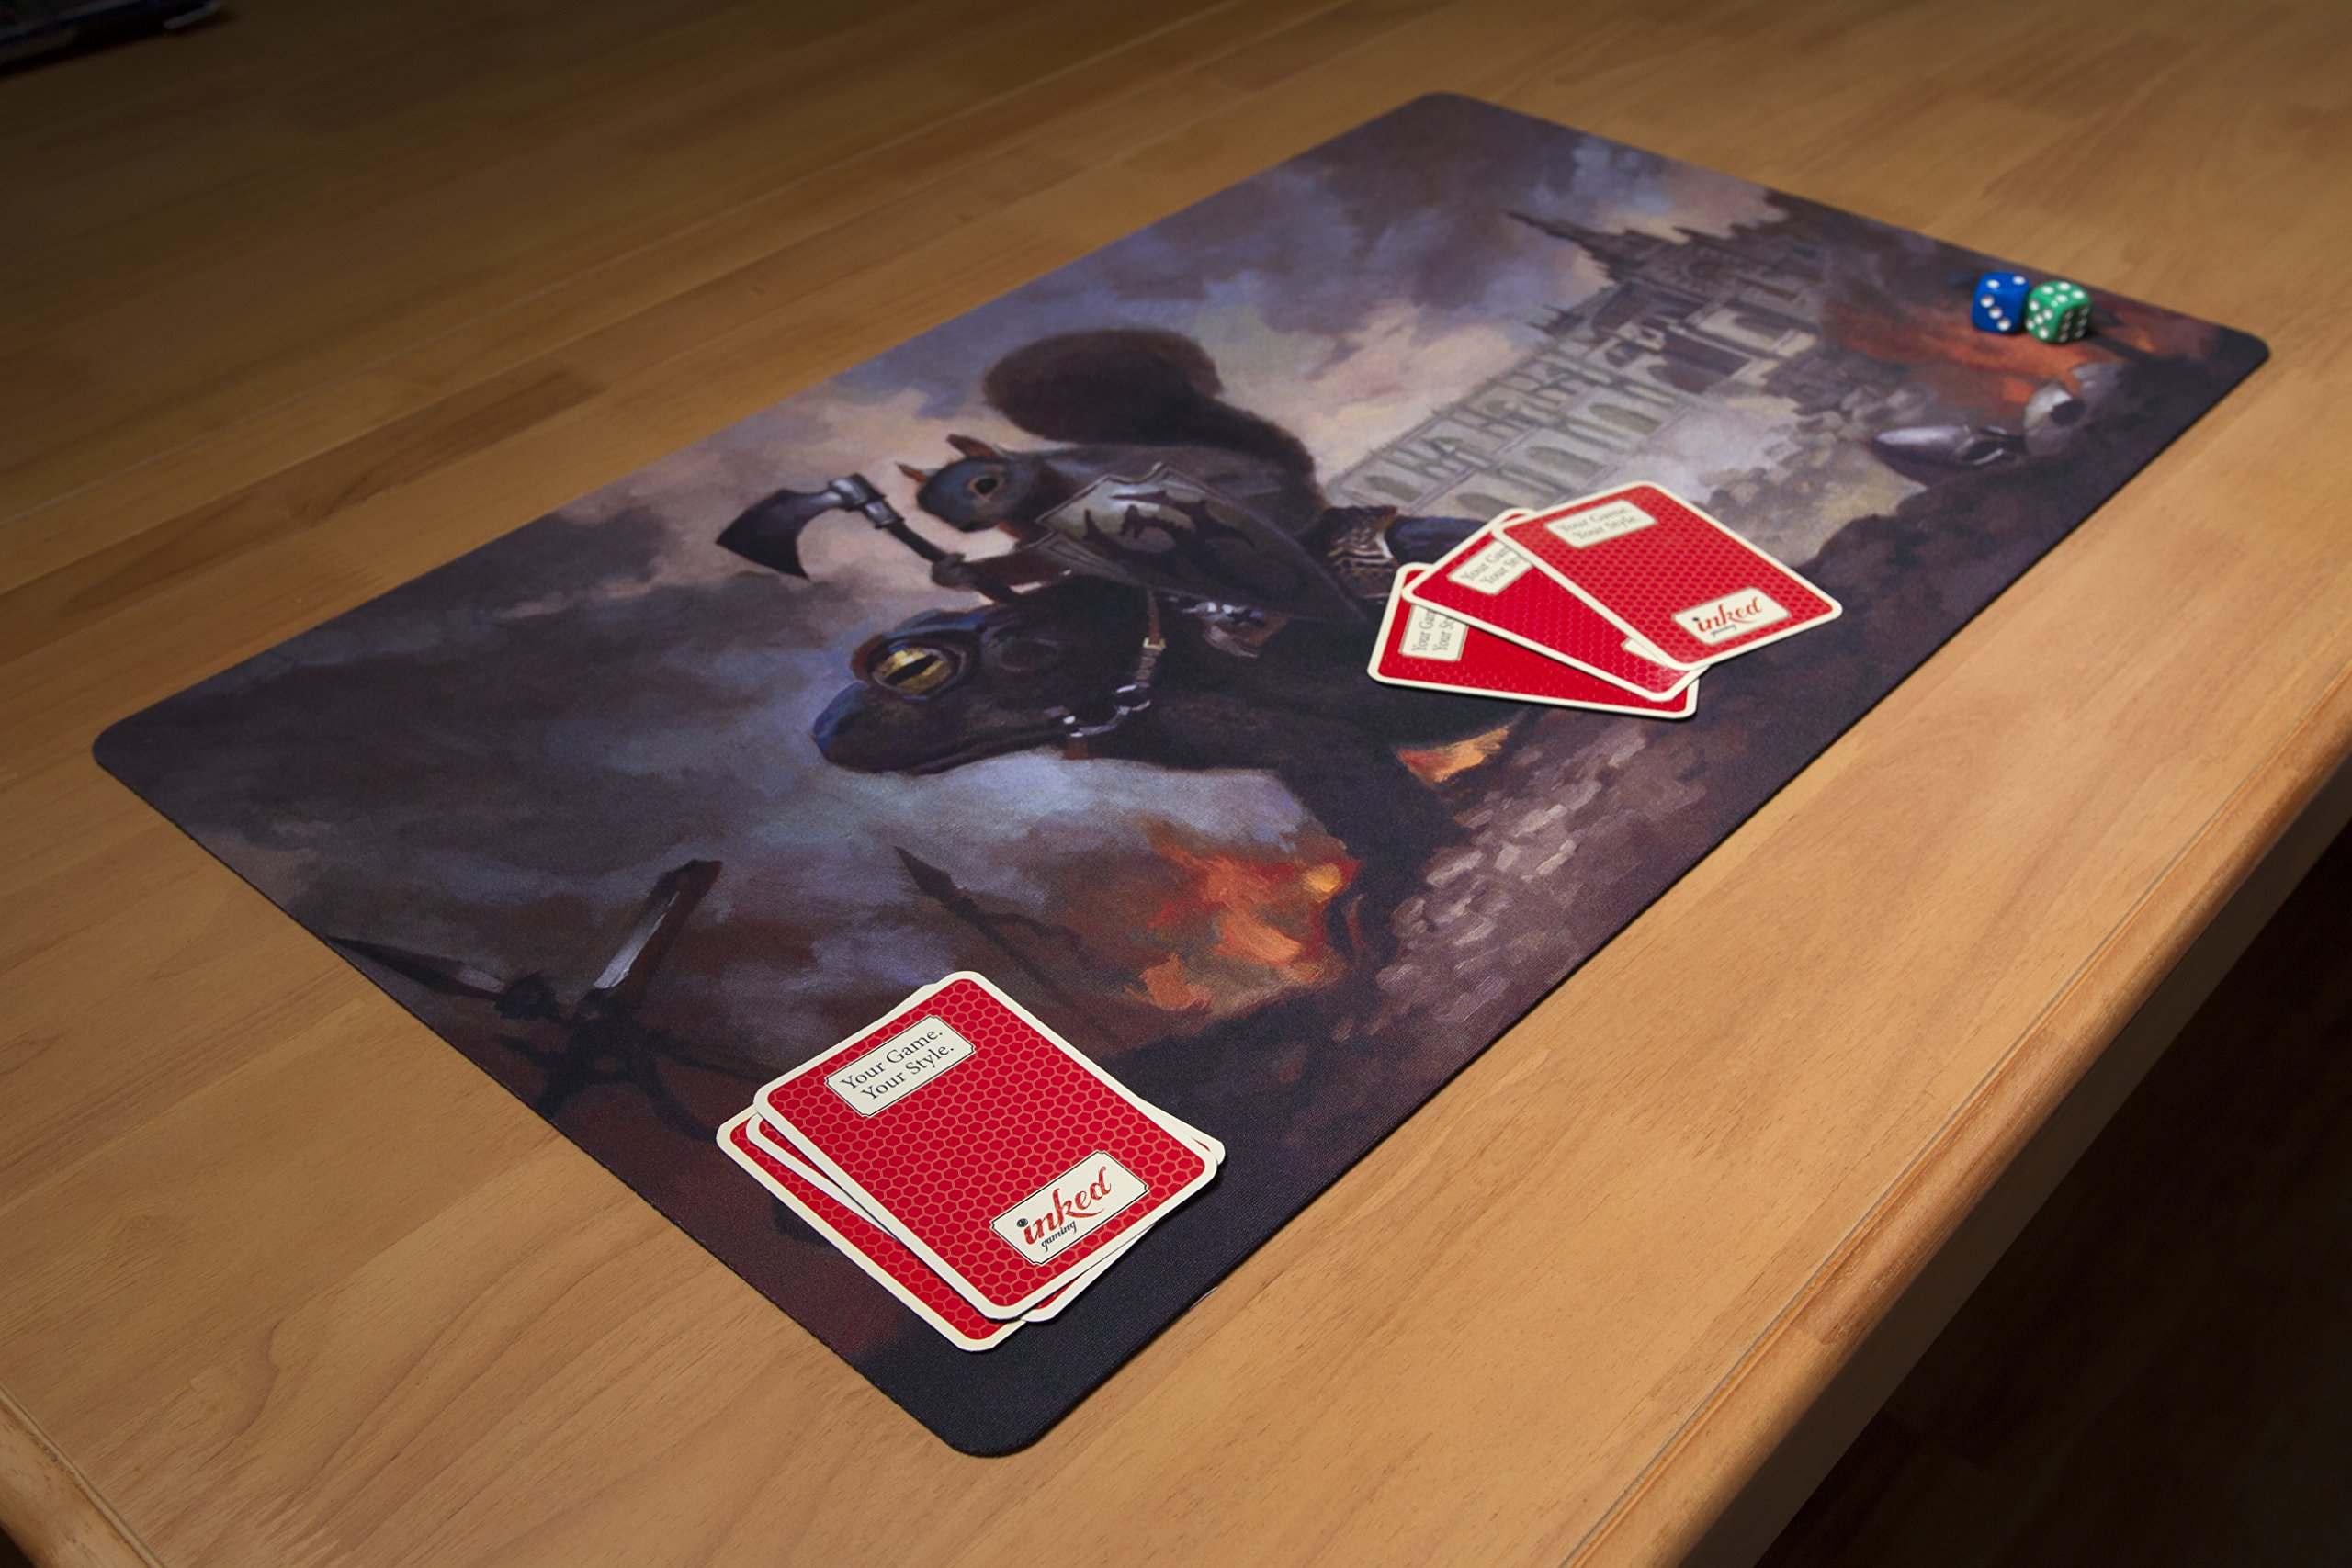 Inked Playmats Toad Rider Playmat Inked Gaming Perfect for Card Gaming TCG Game Mat by Inked Playmats (Image #2)